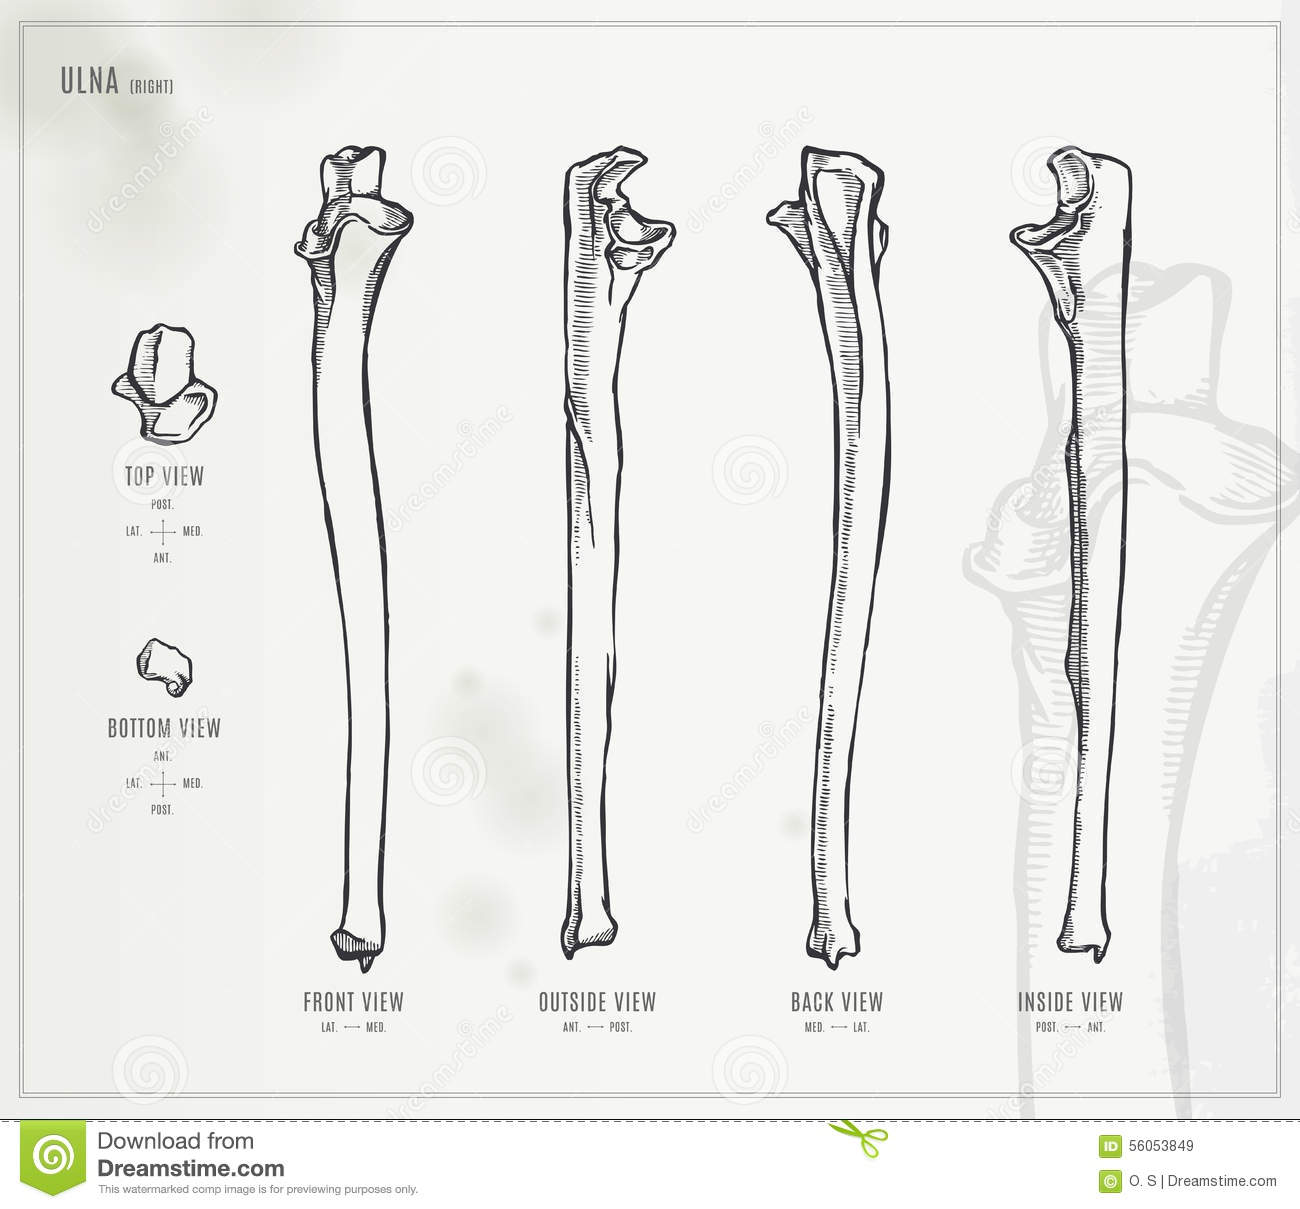 Ulna Stock Vector Illustration Of Drawing Styloid